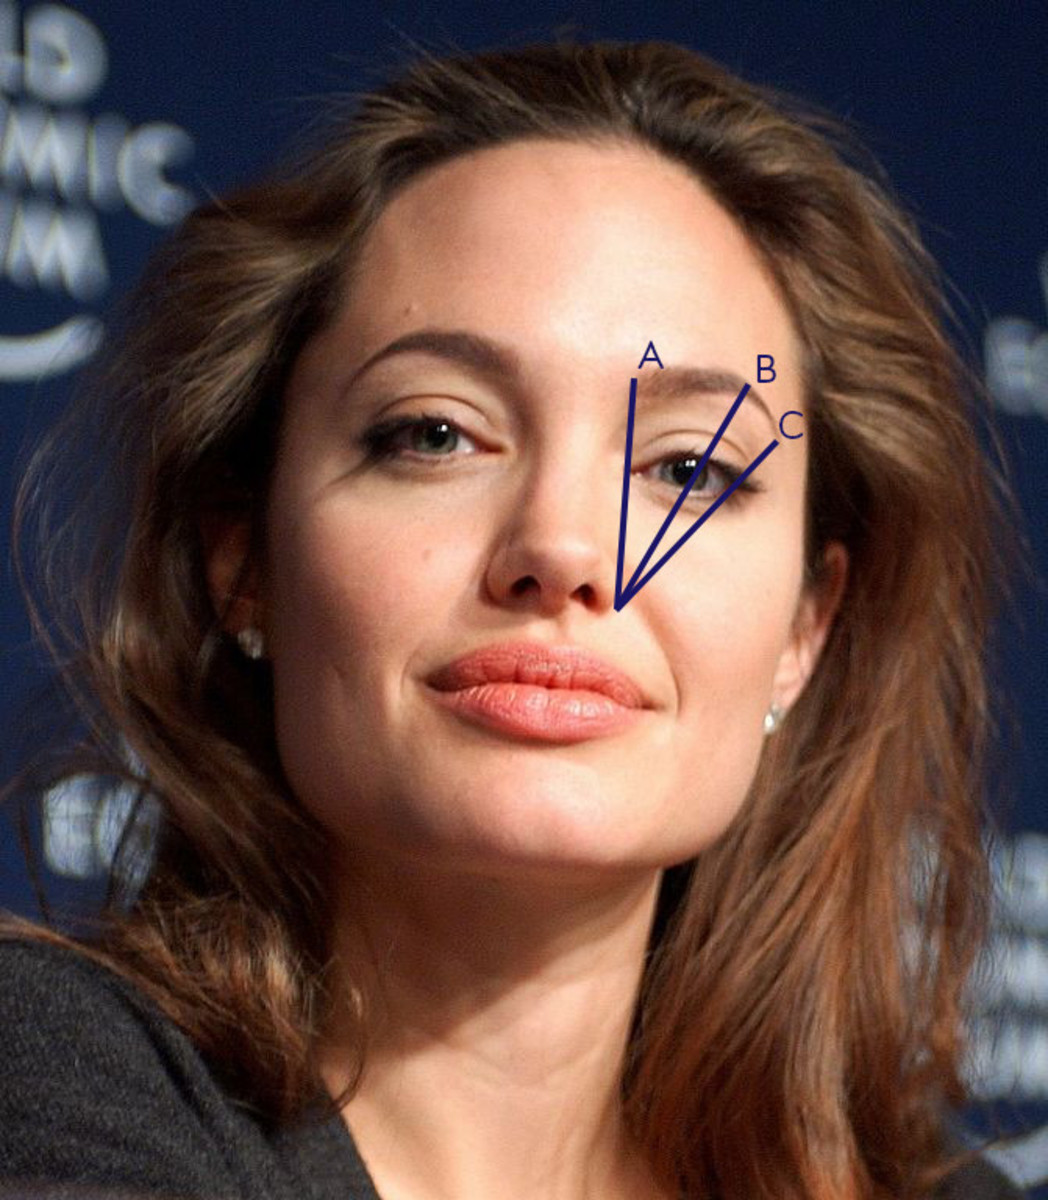 The beautiful Angelina Jolie follows this tip! Or at least her make-up artist does.